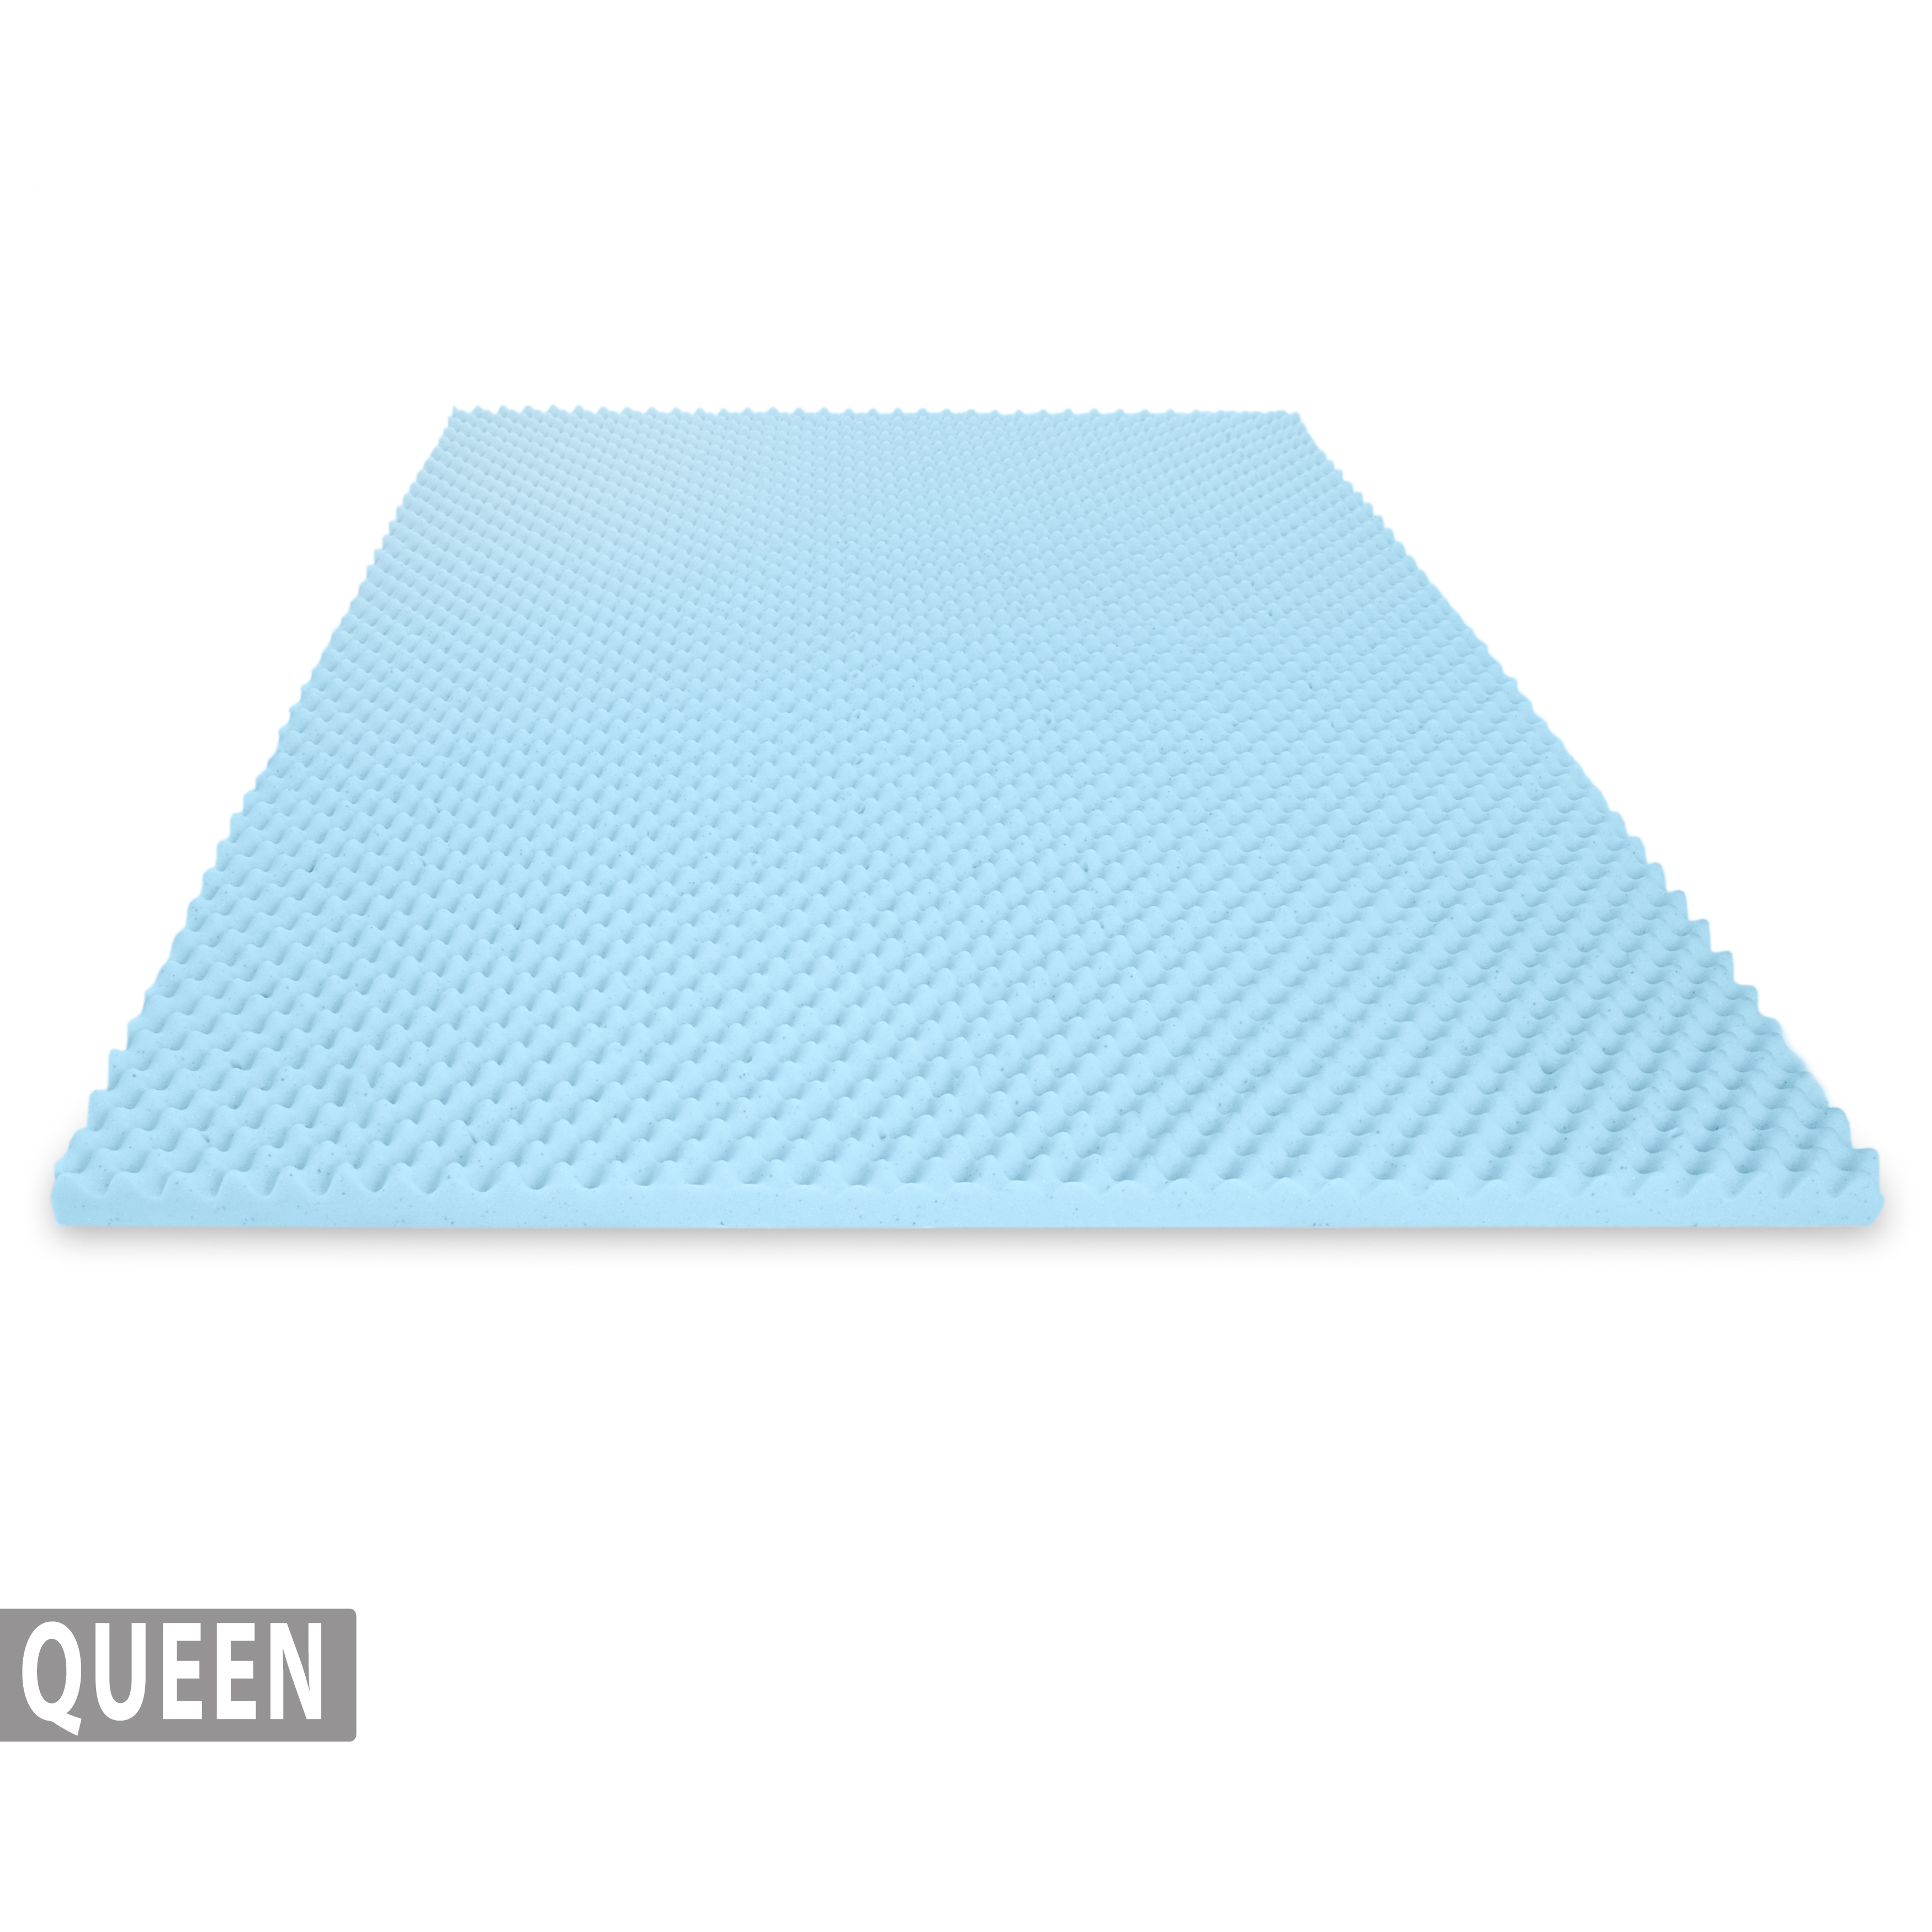 Memory Foam Mattress Toppers Egg Crate Gel Infused Memory Foam Mattress Topper Queen